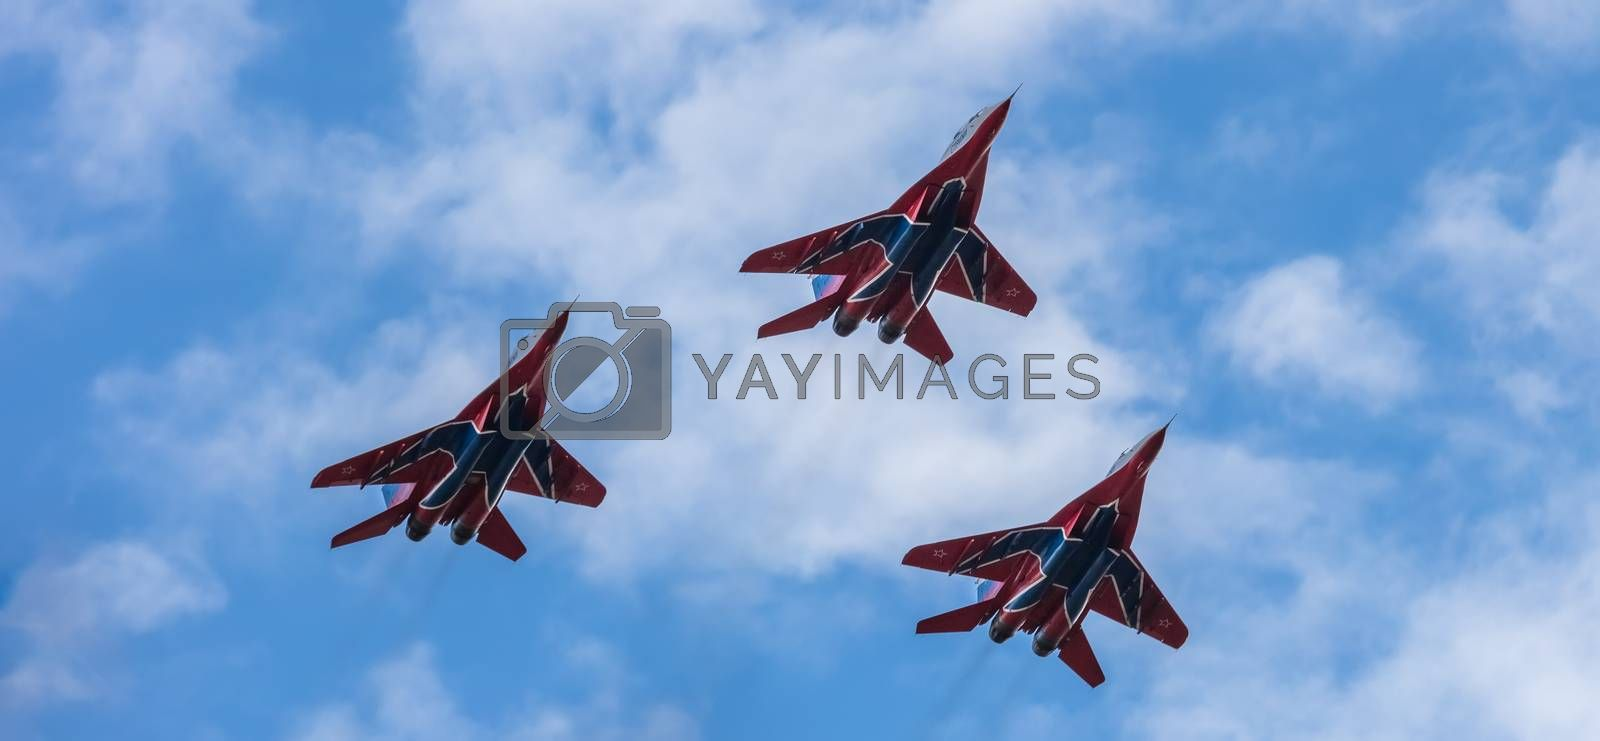 Barnaul, Russia - September 18, 2020: A low angle close-up shot of Strizhi MiG-29 jet squadron performing stunts during an aeroshow. Blue cloudy sky as a background.